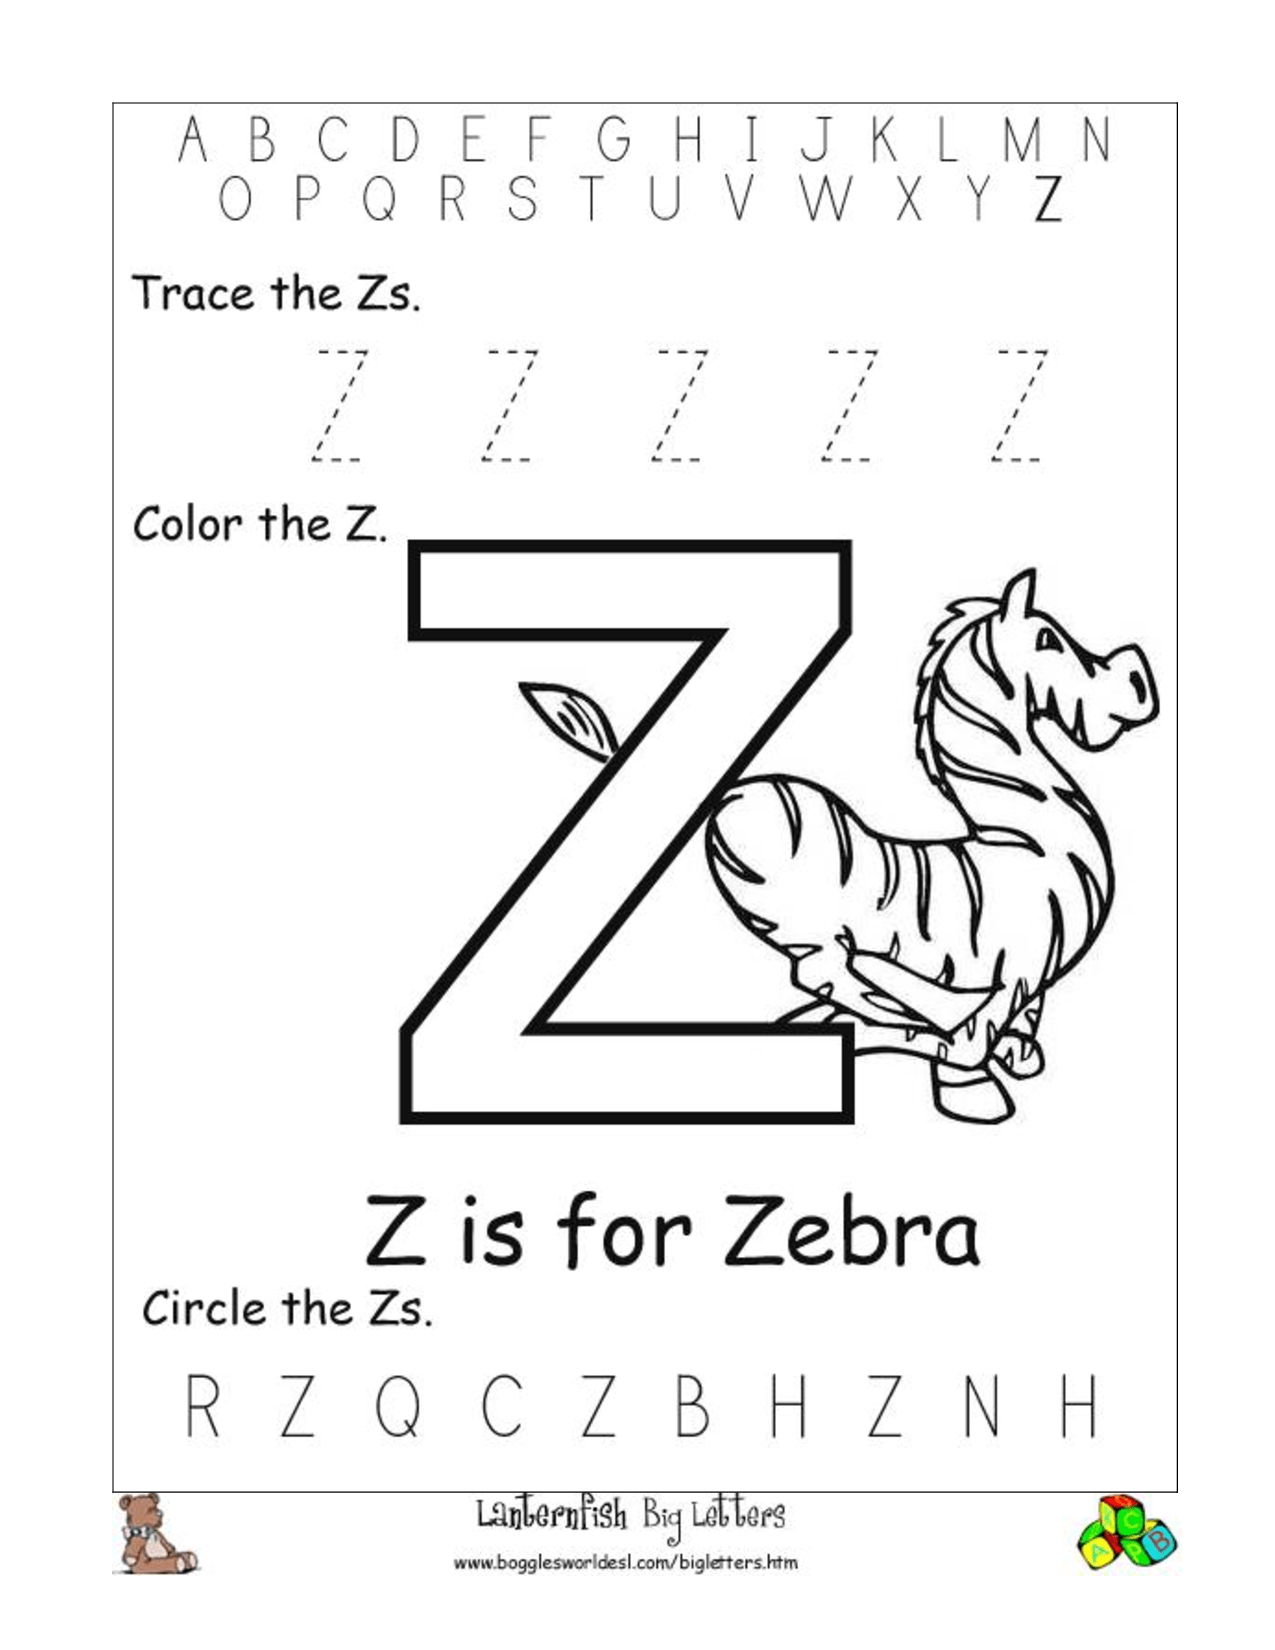 Alphabet Worksheets For Preschoolers Alphabet Worksheet Big Letter Z